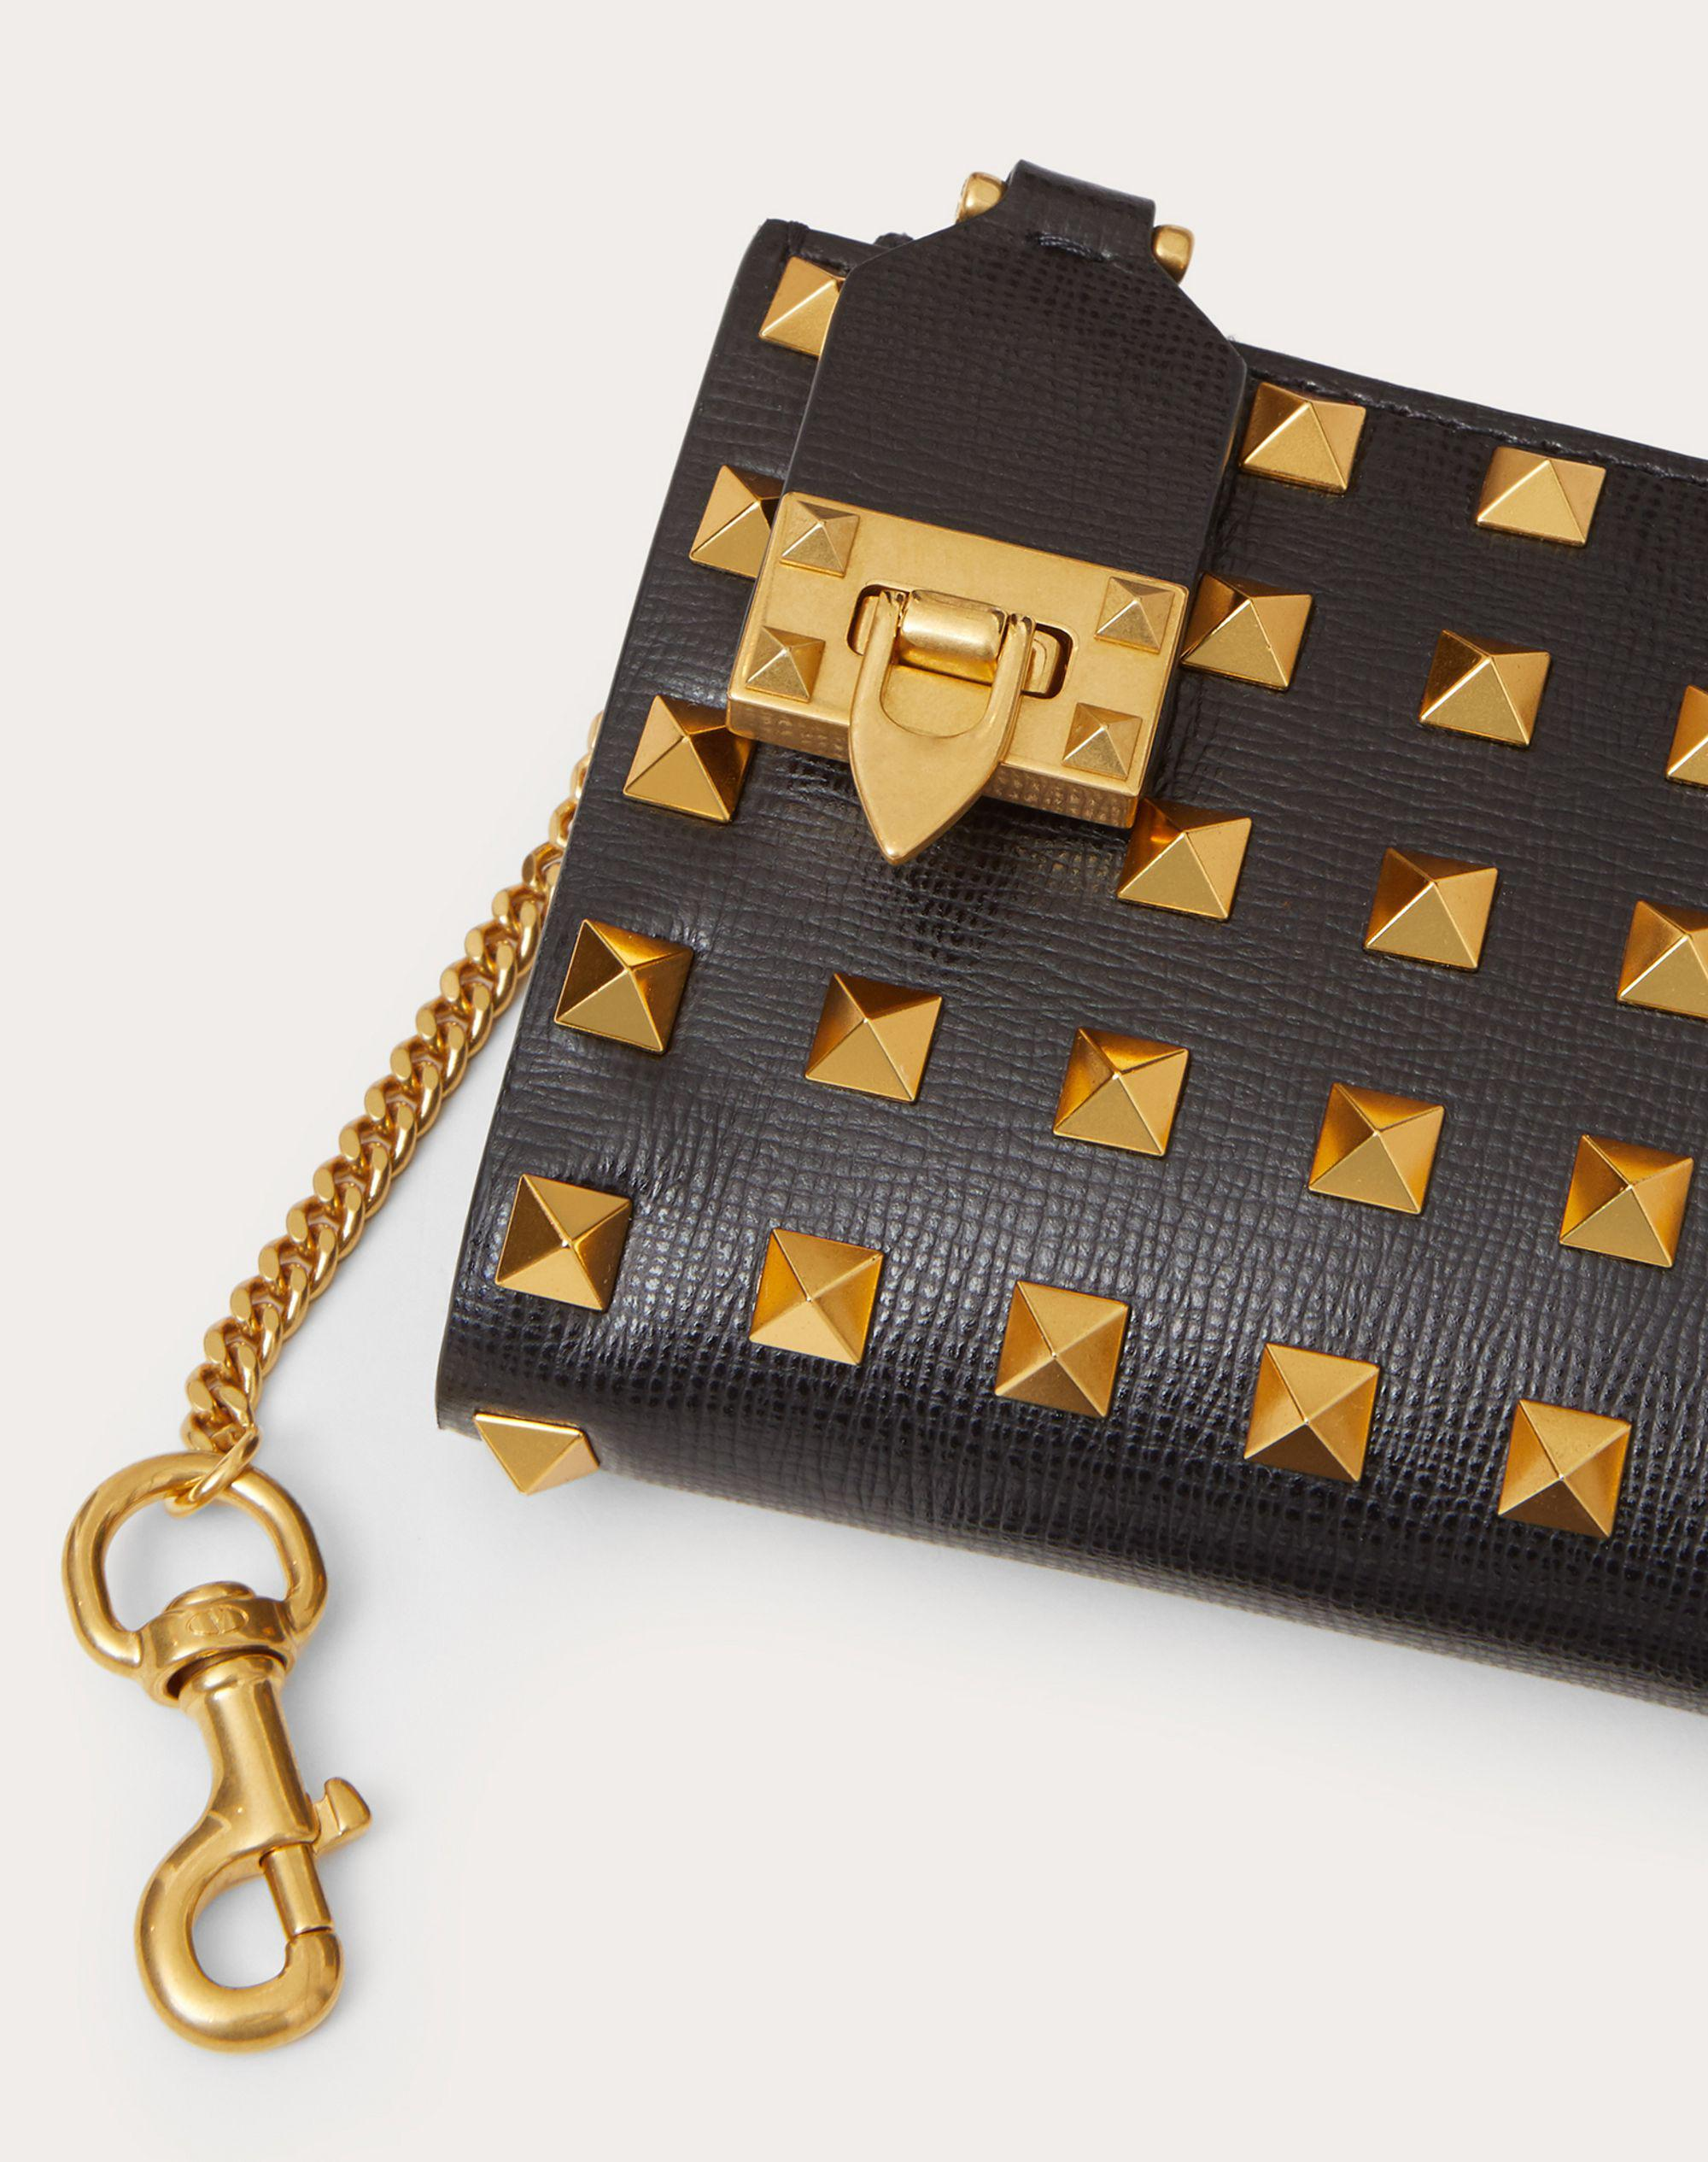 VALENTINO GARAVANI ROCKSTUD COIN PURSE AND CARDHOLDER IN GRAINY CALFSKIN LEATHER WITH ALL-OVER STUDS 1